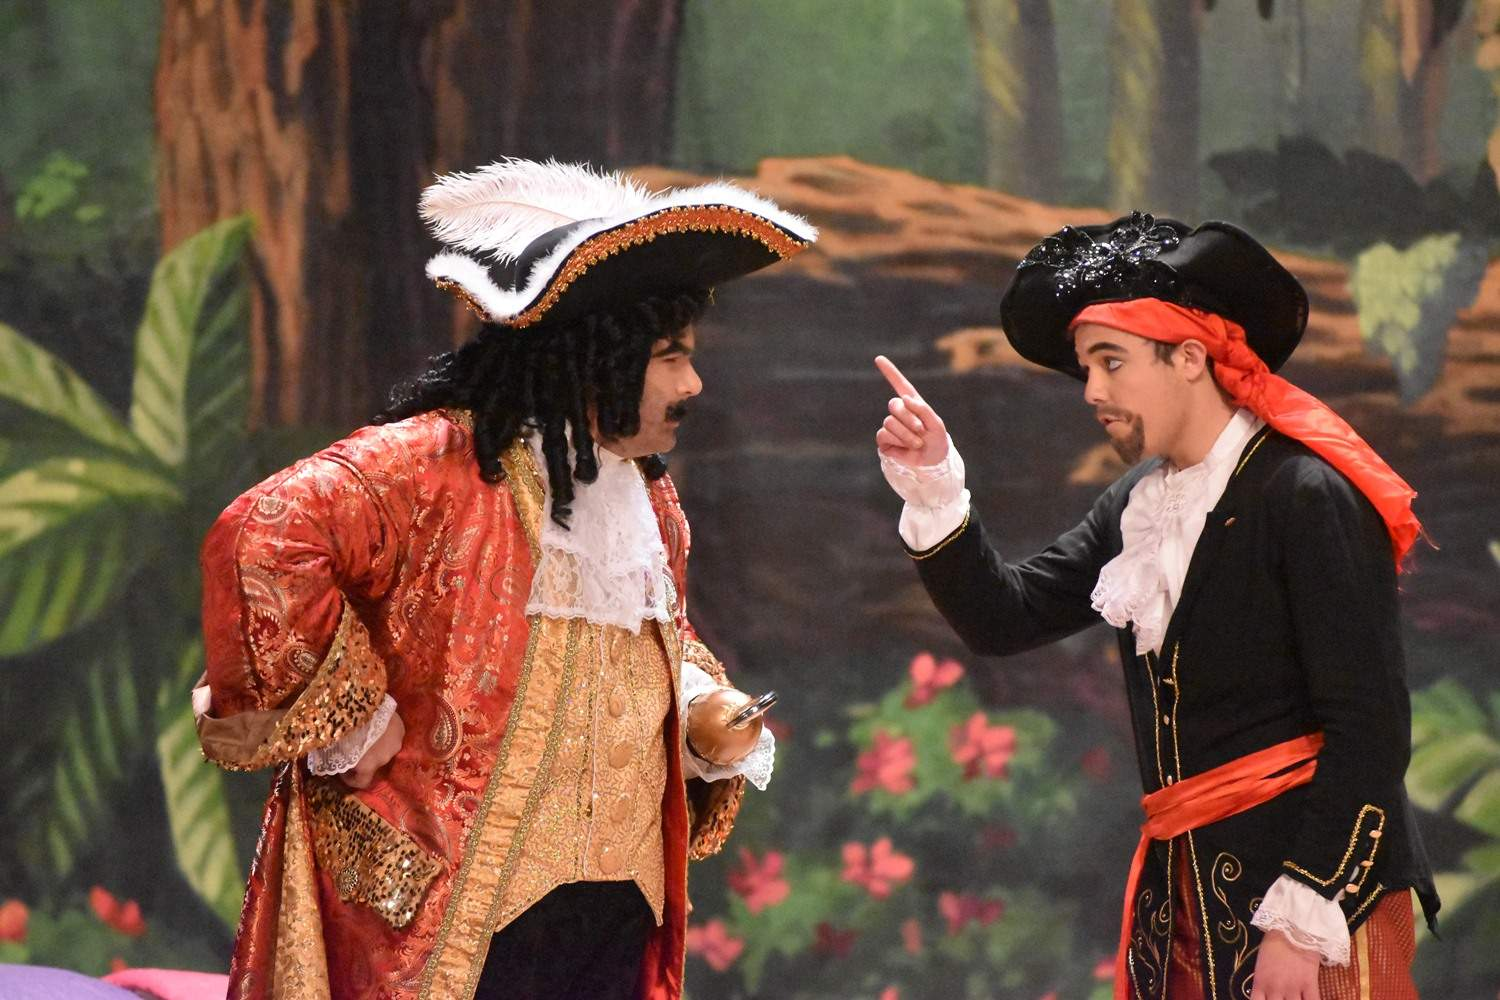 Captain Hook (Alex McRoy) argues with Smee (Braden Cummins) over Hook's plan for revenge to capture and kill Peter Pan.